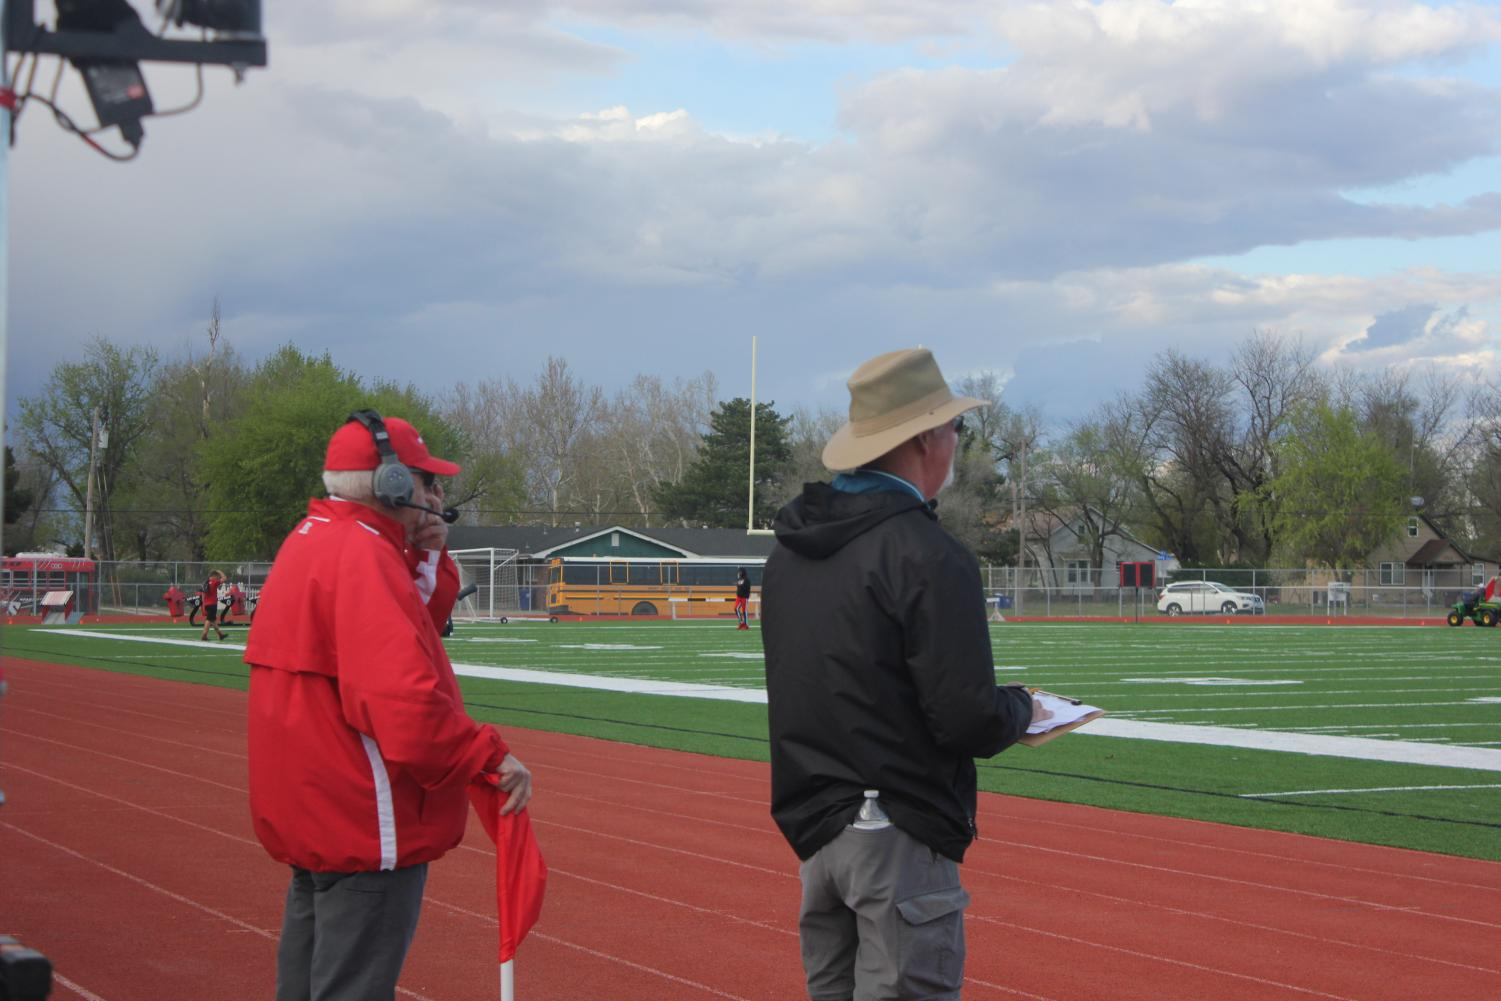 The+coaches+keep+score+and+support+the+McPherson+High+track+team.+